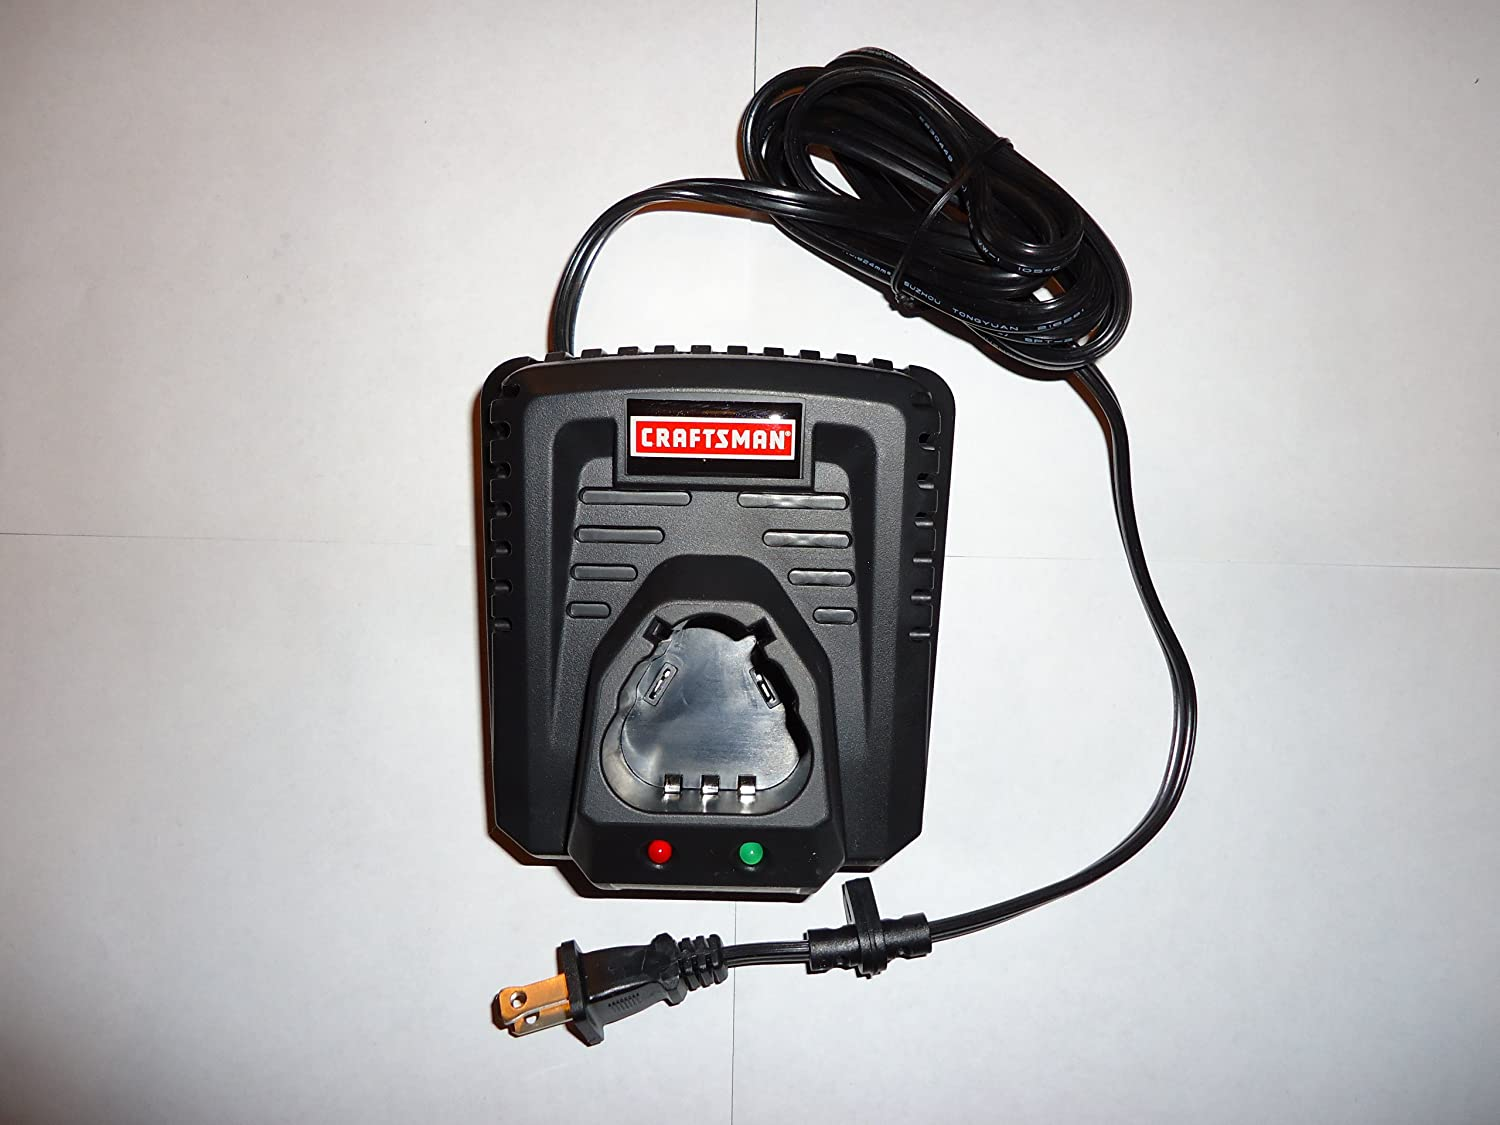 WORKS PERFECT Craftsman Nextec 12Volt Lithium Ion Battery Charger # 320.10006